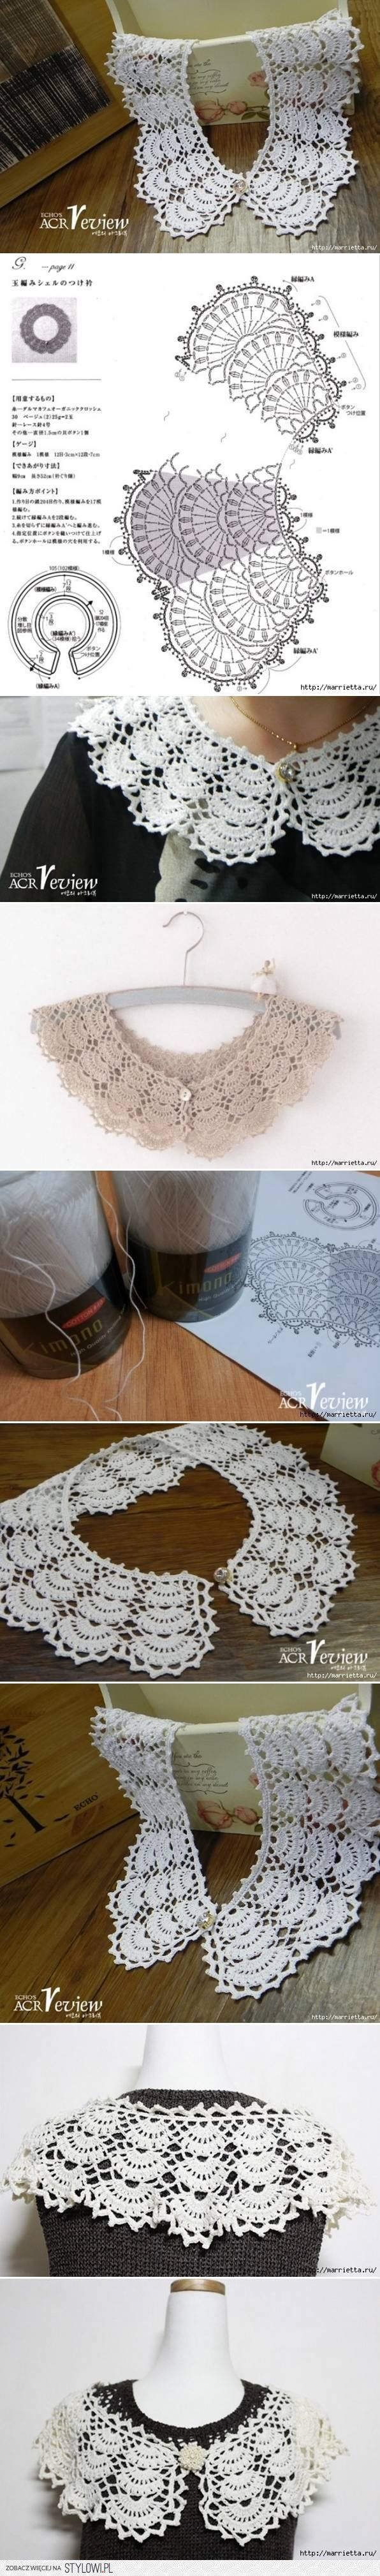 DIY Open Work Crochet Collar DIY Projects | UsefulDIY.c… na Stylowi.pl